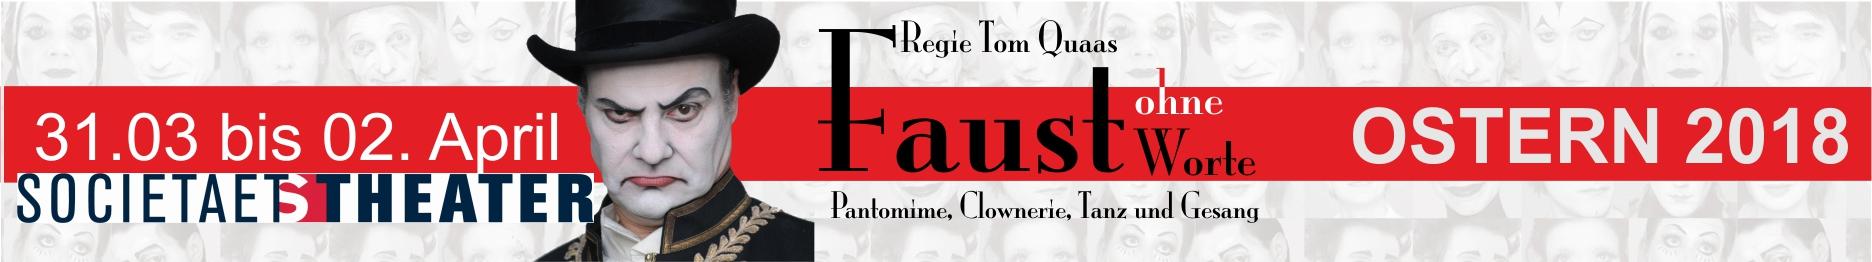 Theaterzirkus Dresden | Tom Quaas